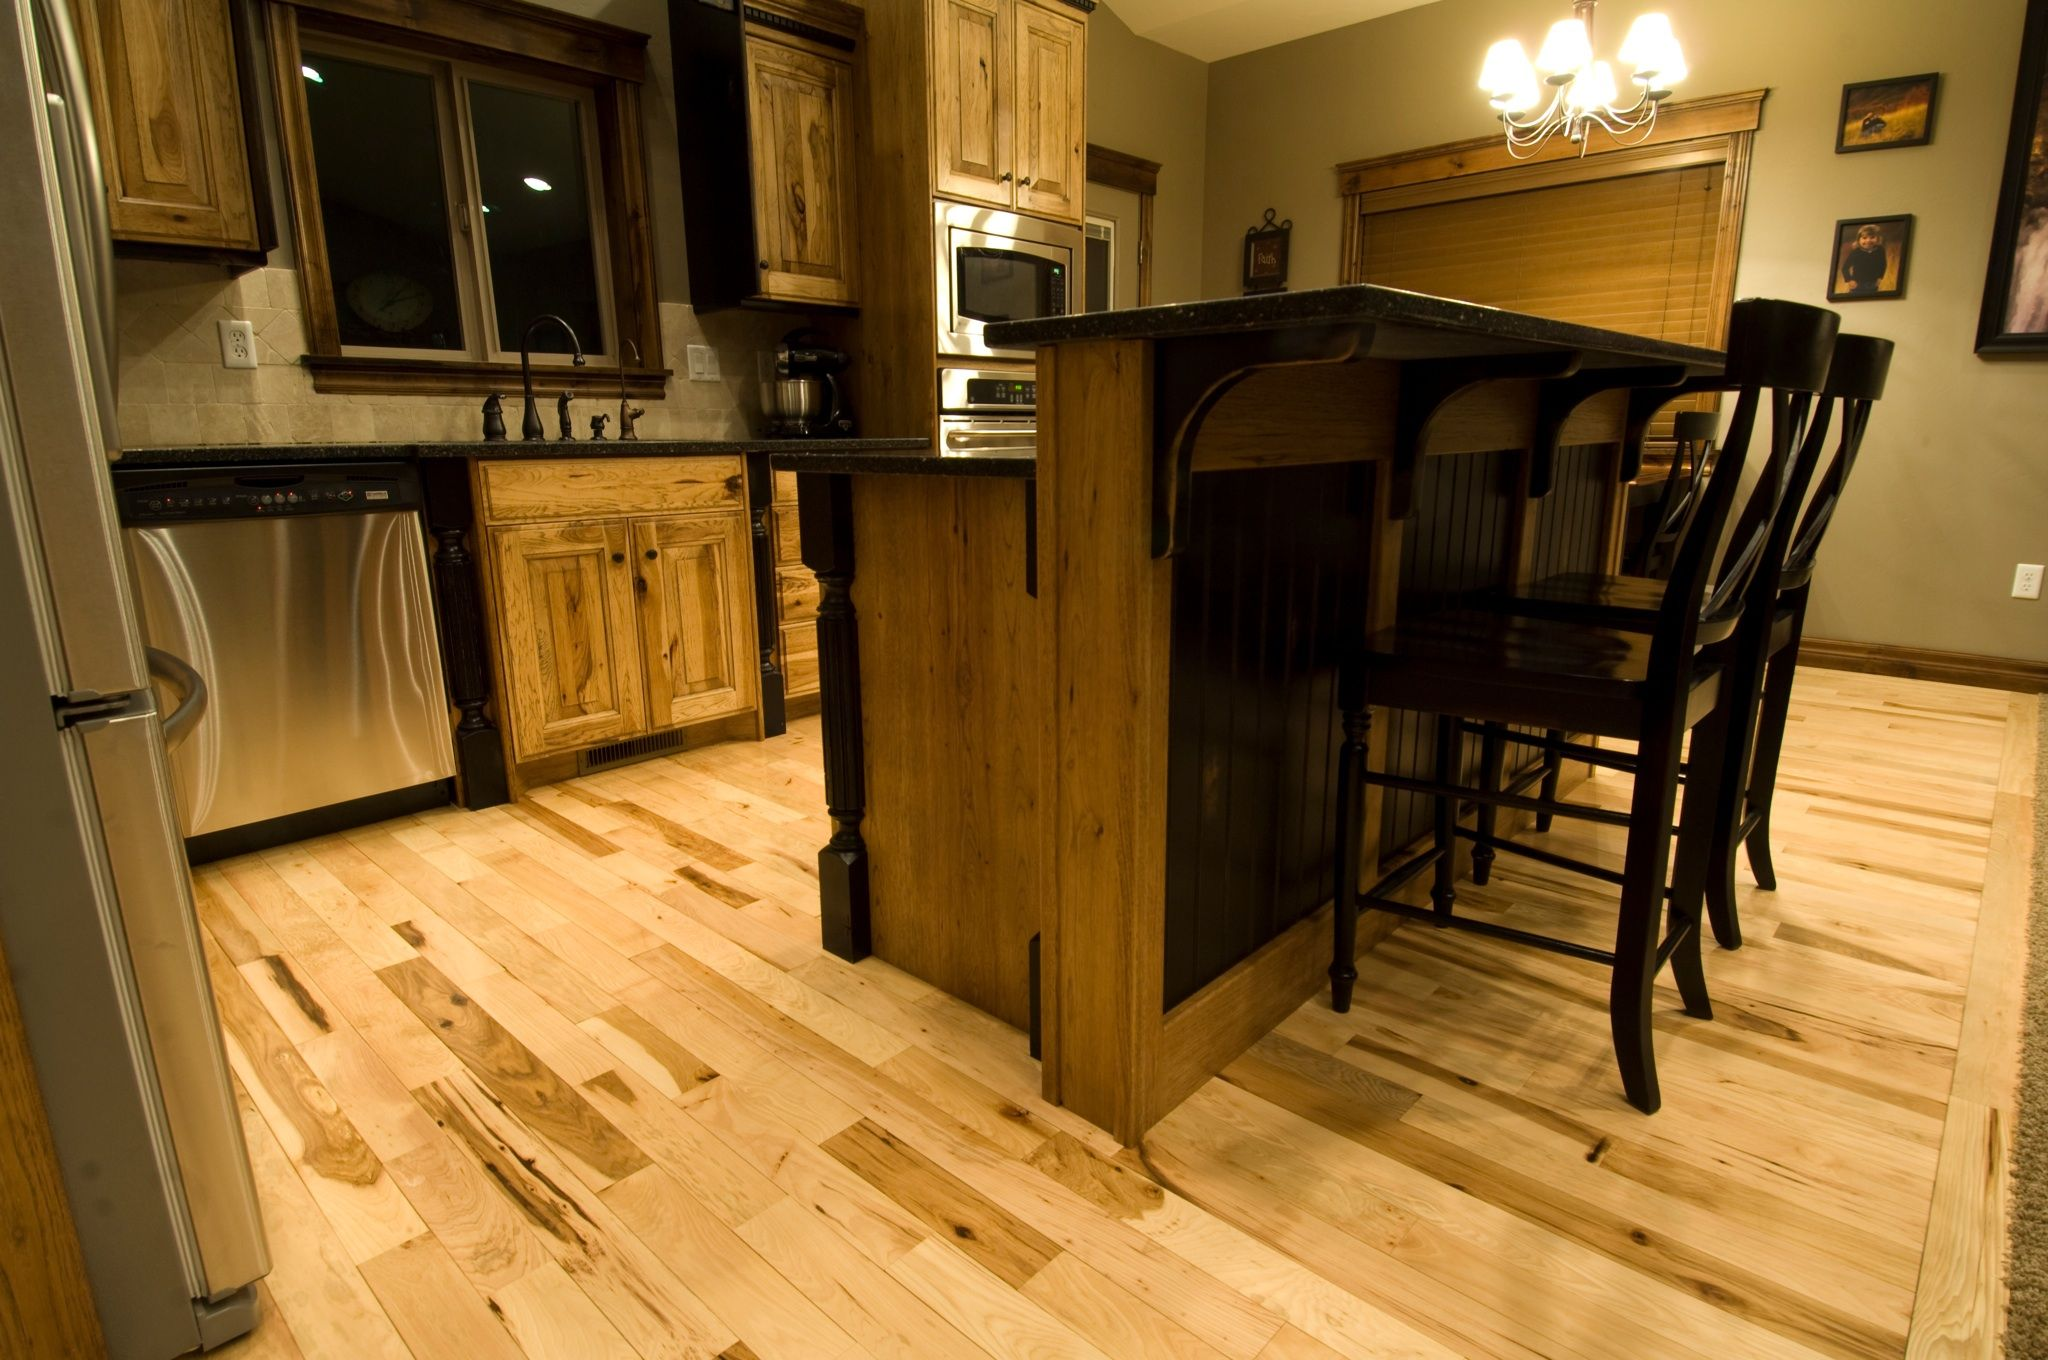 Cabin Grade Hickory Floors The Est Hardwood Flooring You Can Get But It S Become So Por That Is Hard To Find